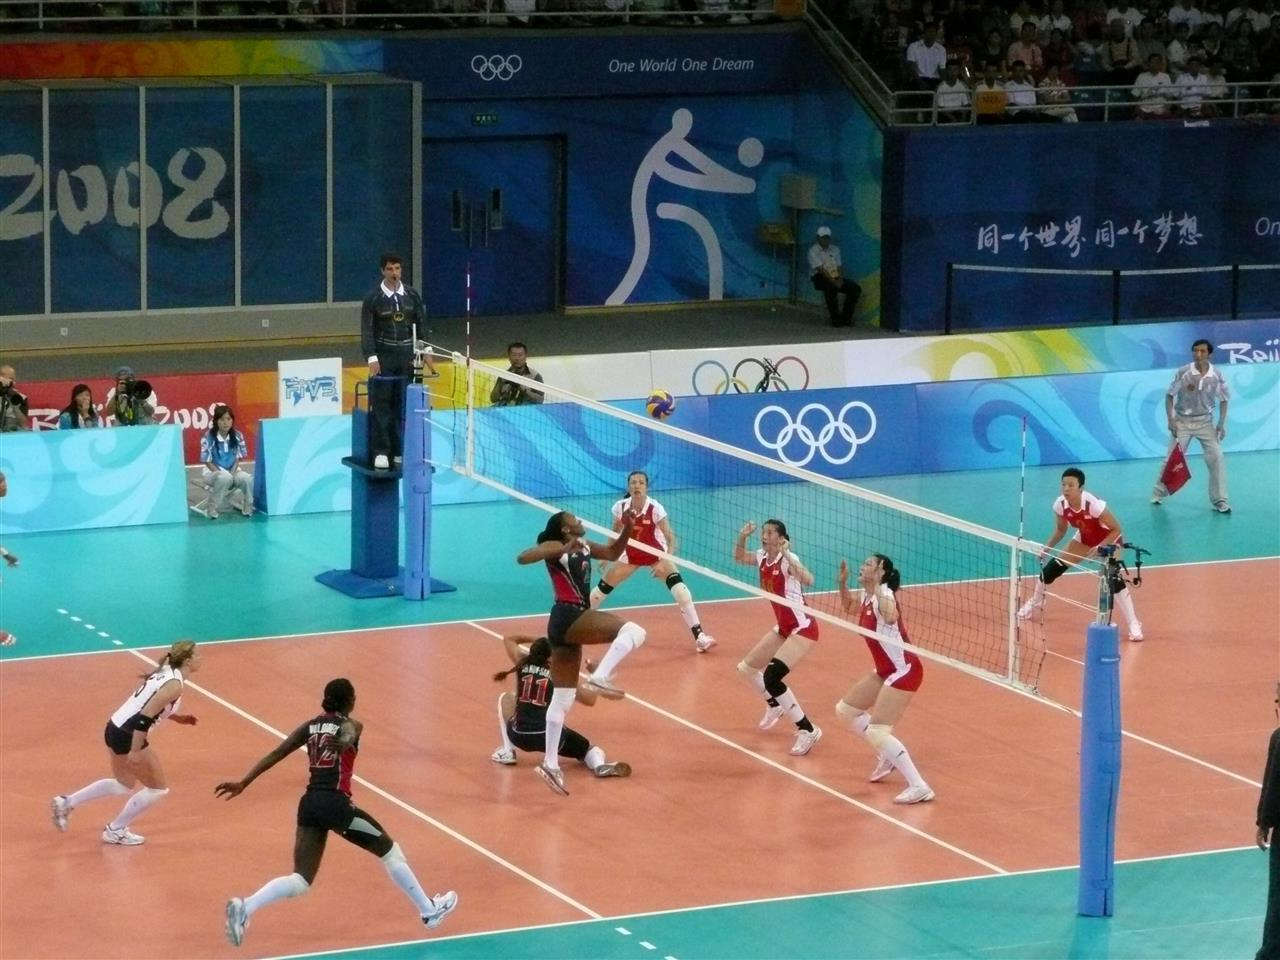 1280x960 Volleyball in China Olympics Wallpapers